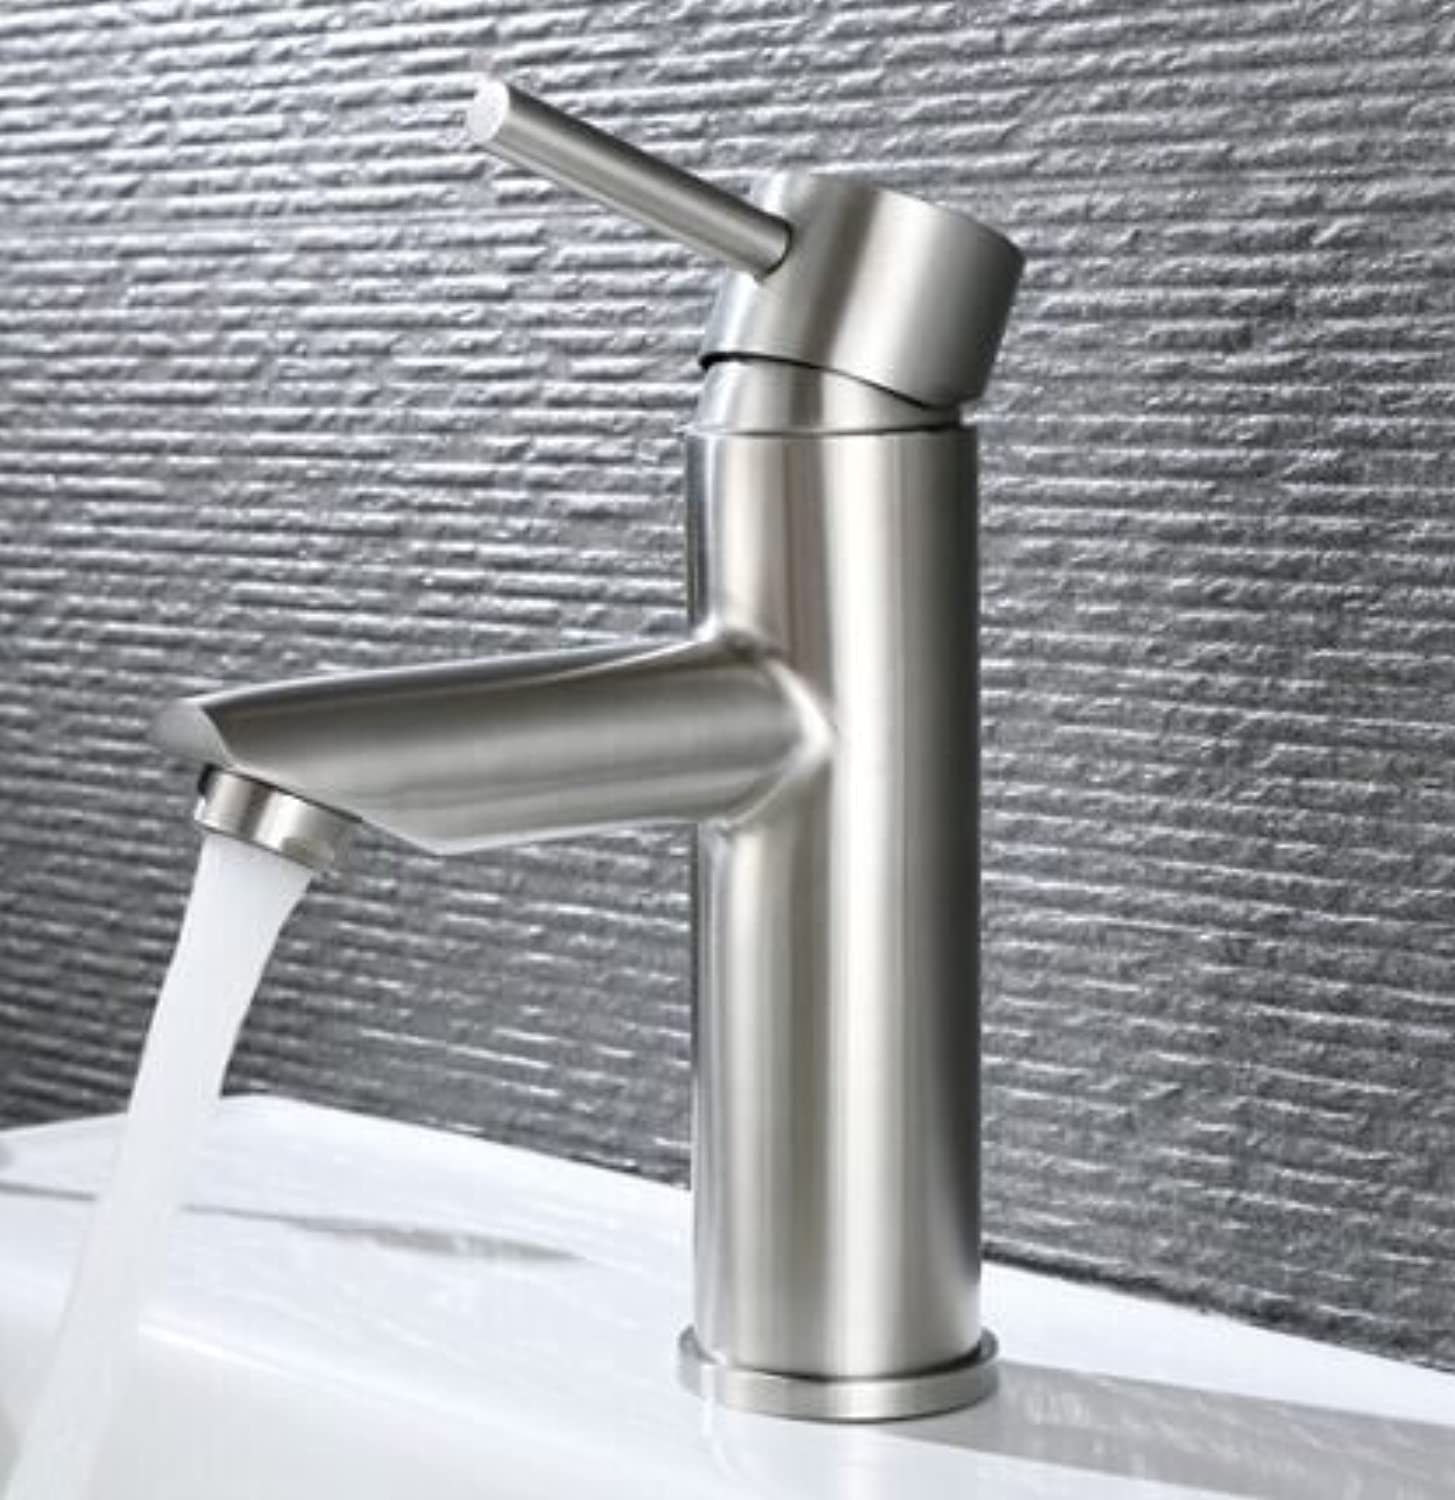 LHbox Basin Mixer Tap Bathroom Sink Faucet Stainless steel single basin, basin basin sinks, faucets, lead-free single handle single hole faucet, hot & cold water